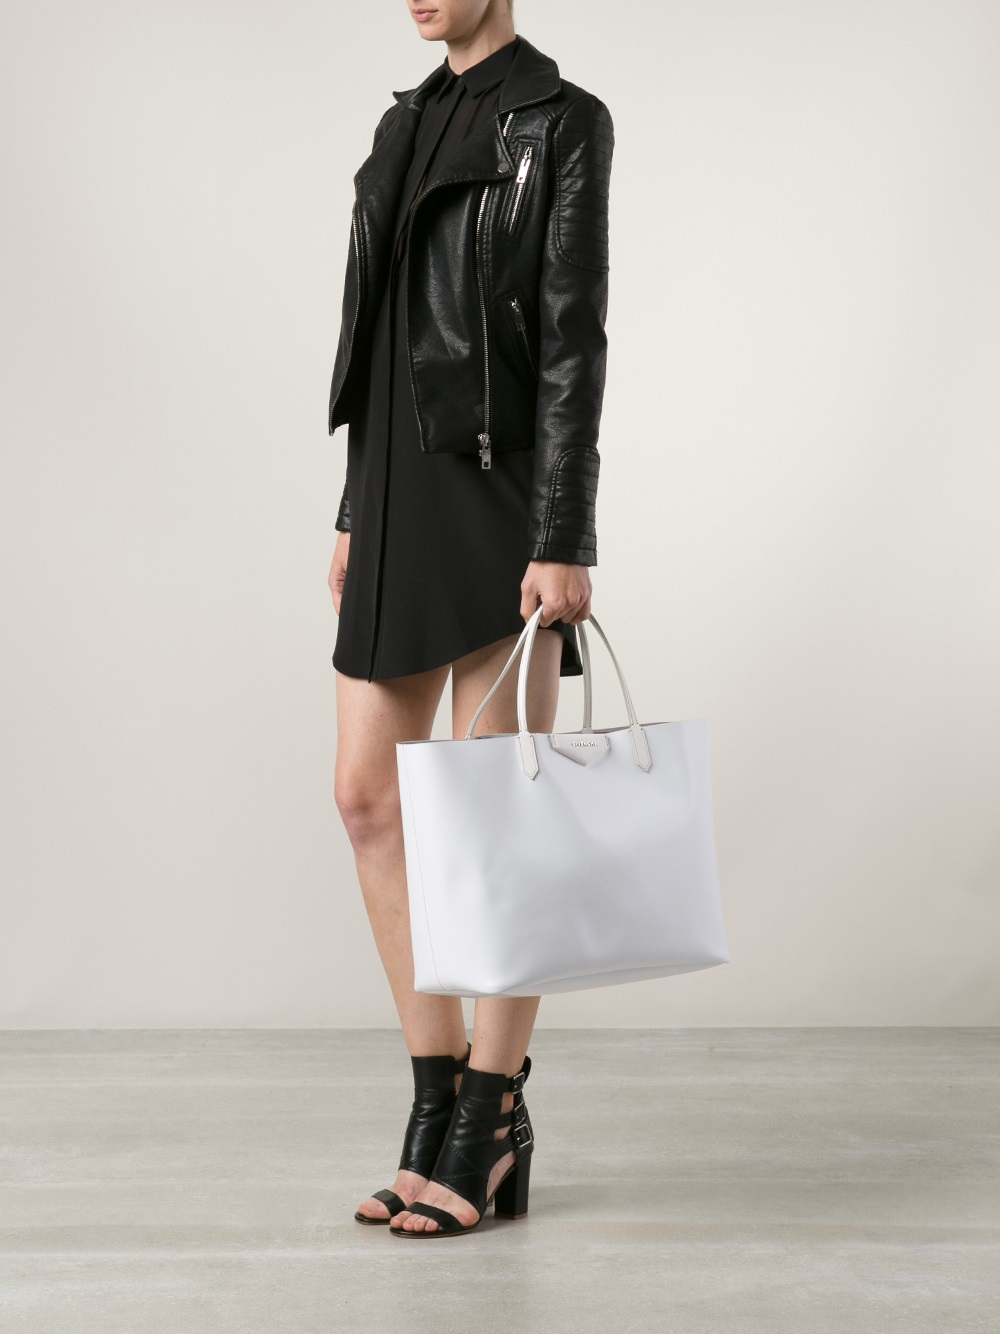 Lyst - Givenchy Large  Antigona  Shopping Tote in White 68c48be243